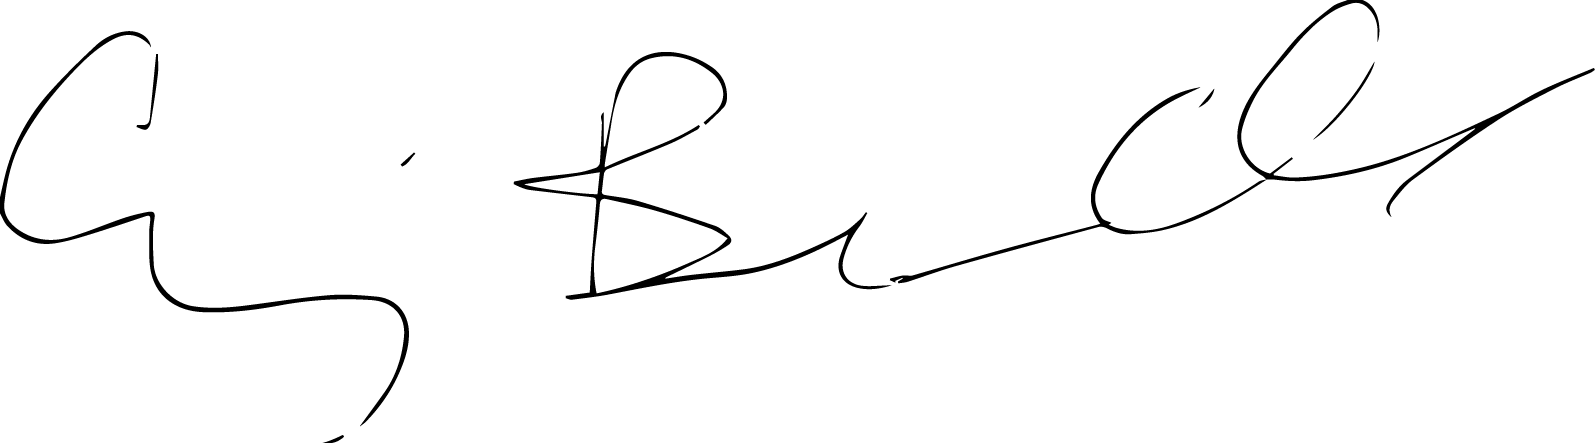 BROMELL SIGNATURE